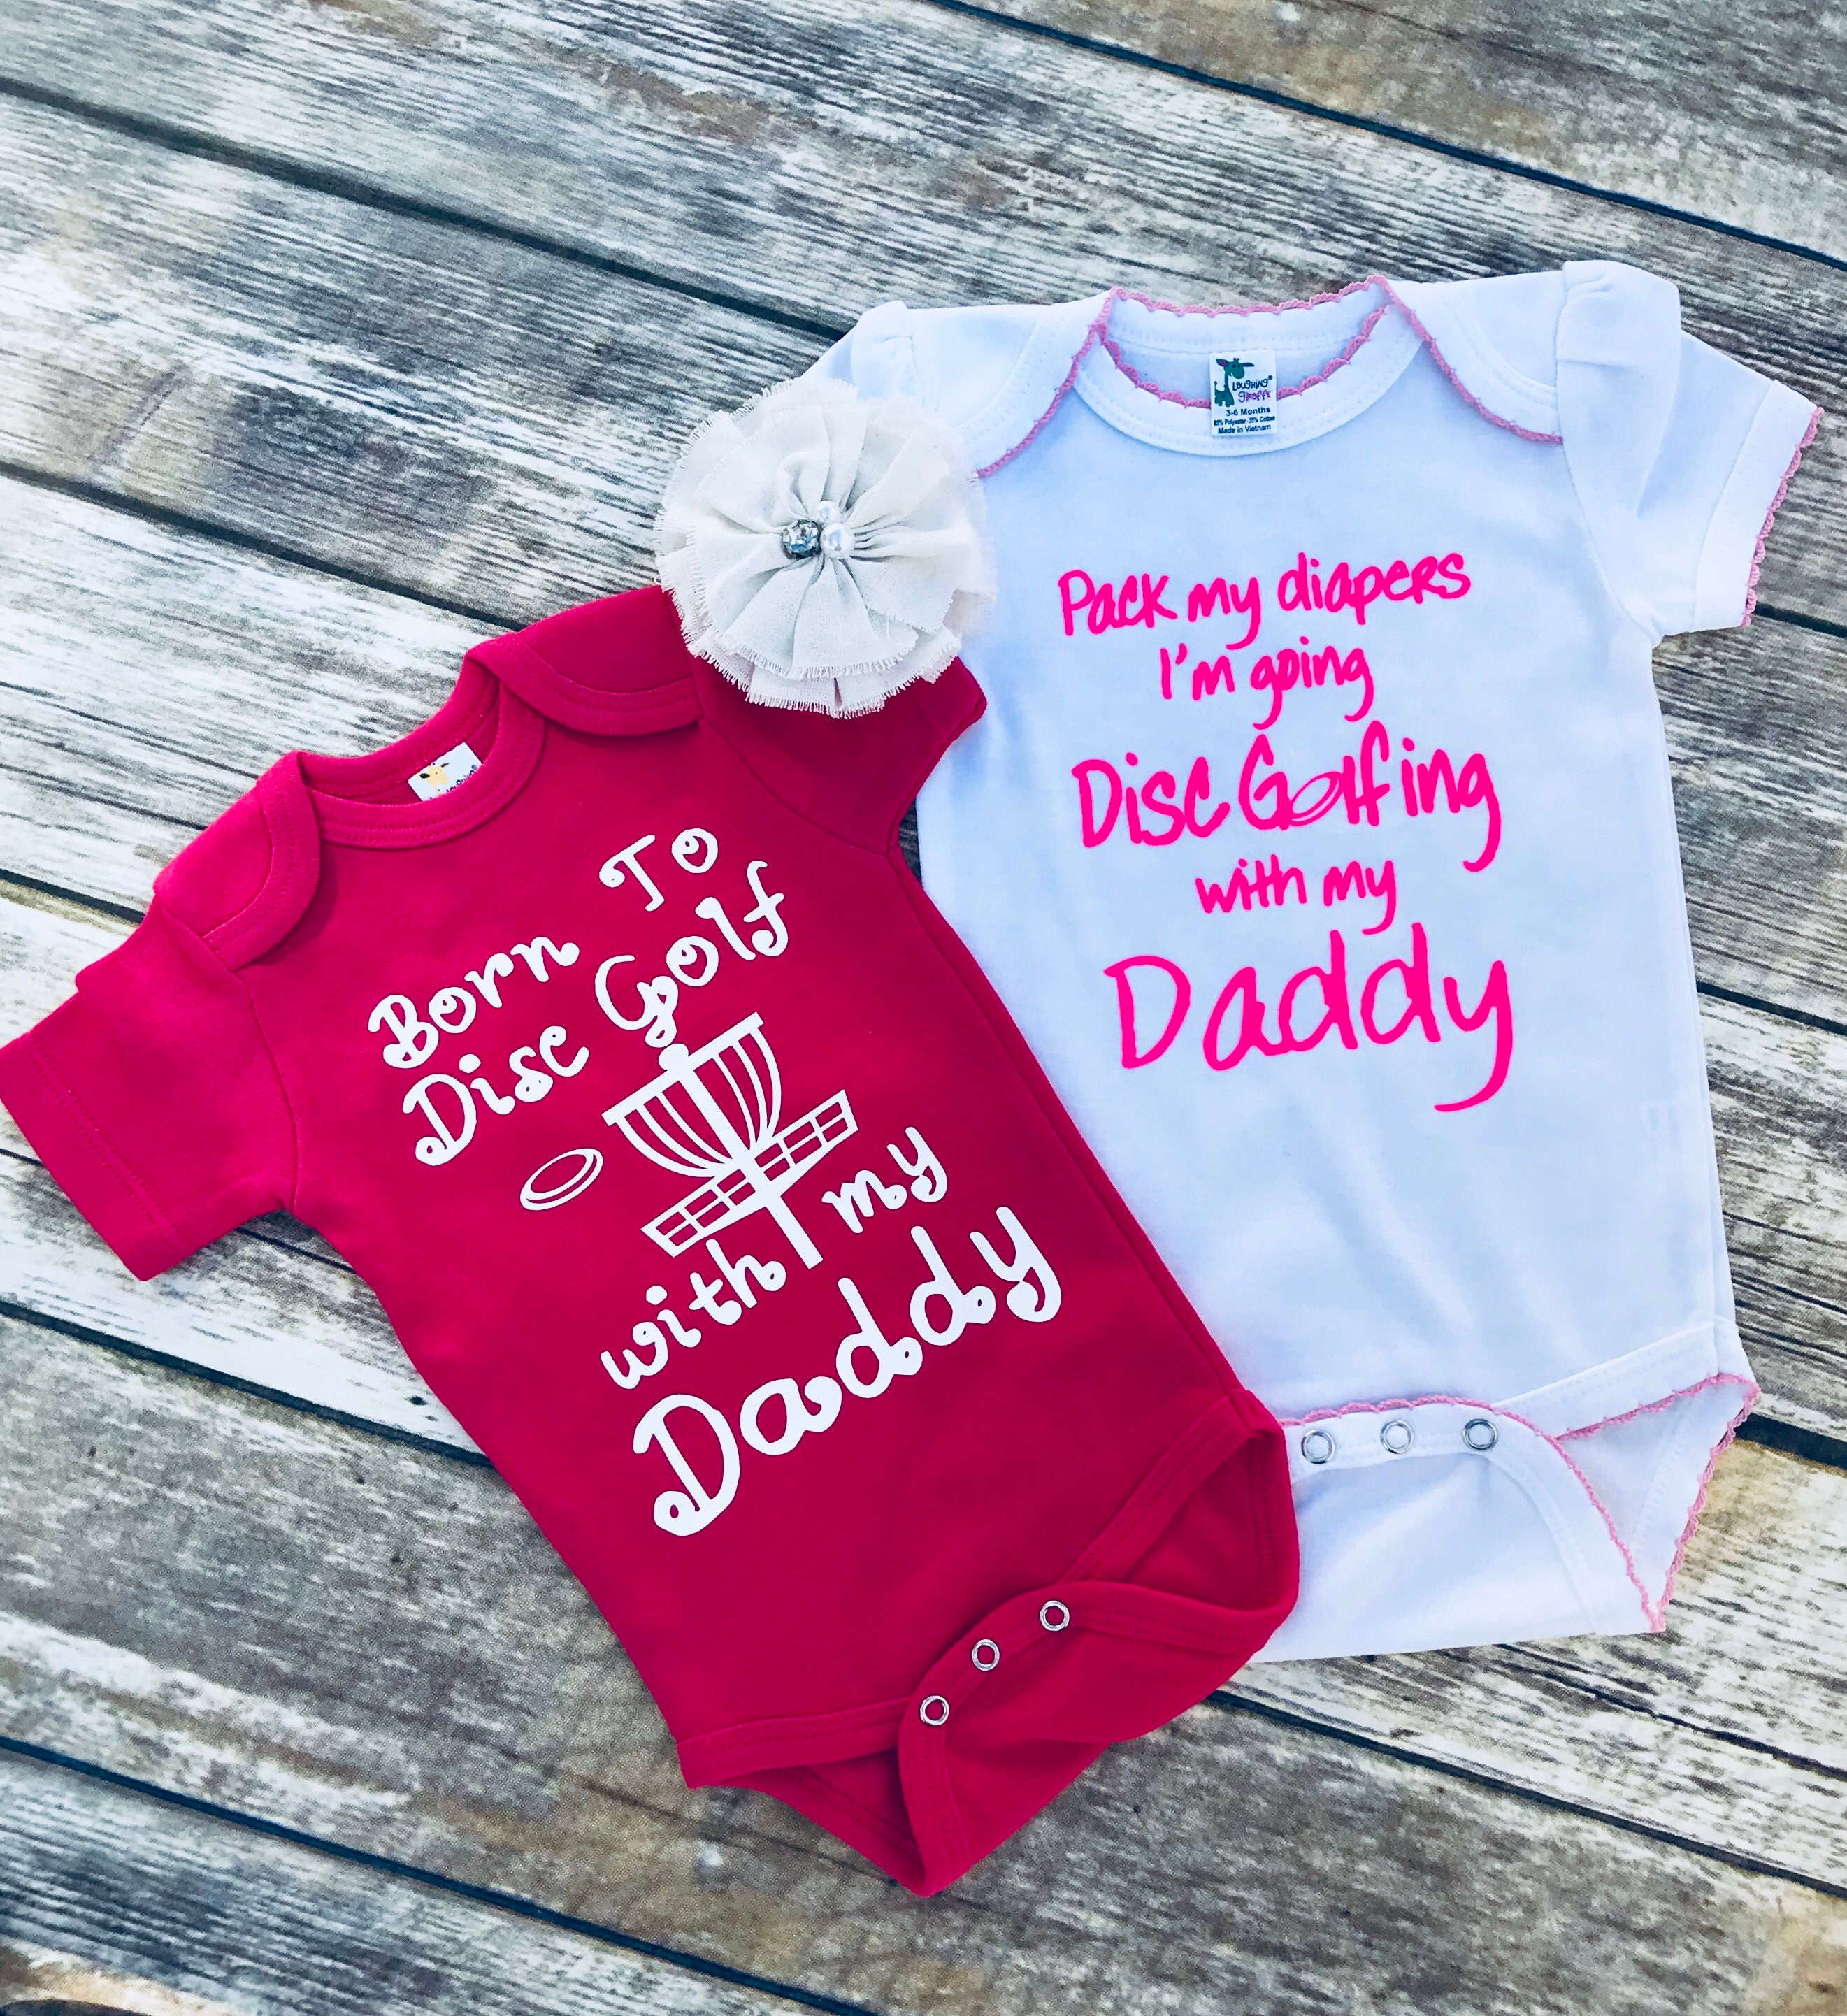 Future Disc Golf Buddy and Pack my diapers I\'m going Disc